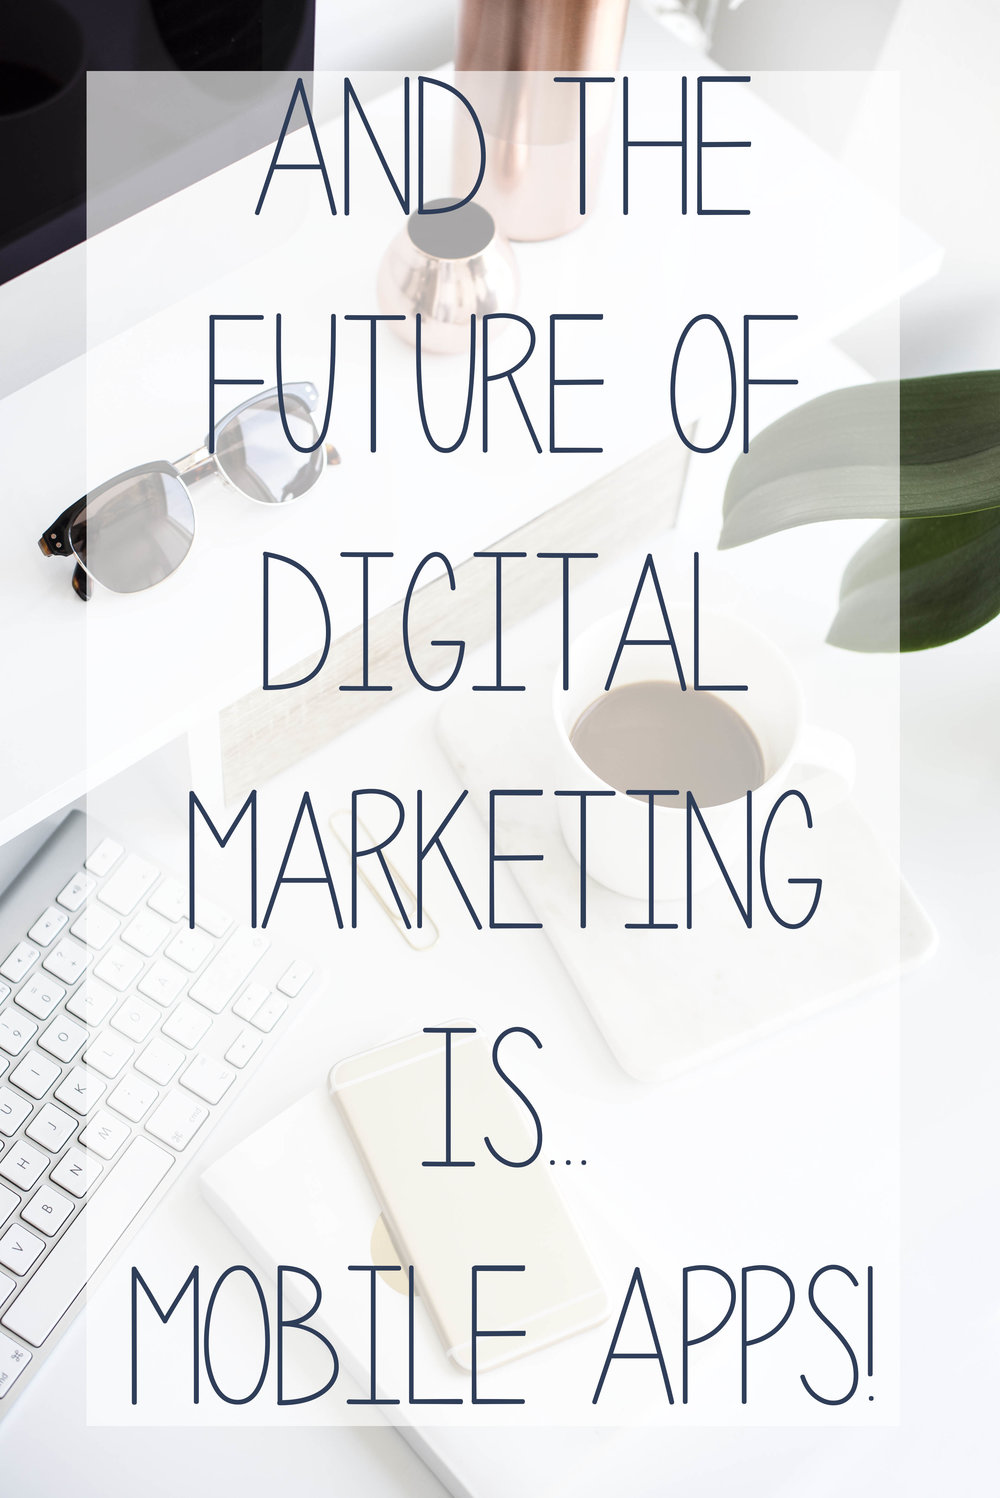 Learn more about about why Hub Digital thinks mobile apps will be the future of digital marketing.